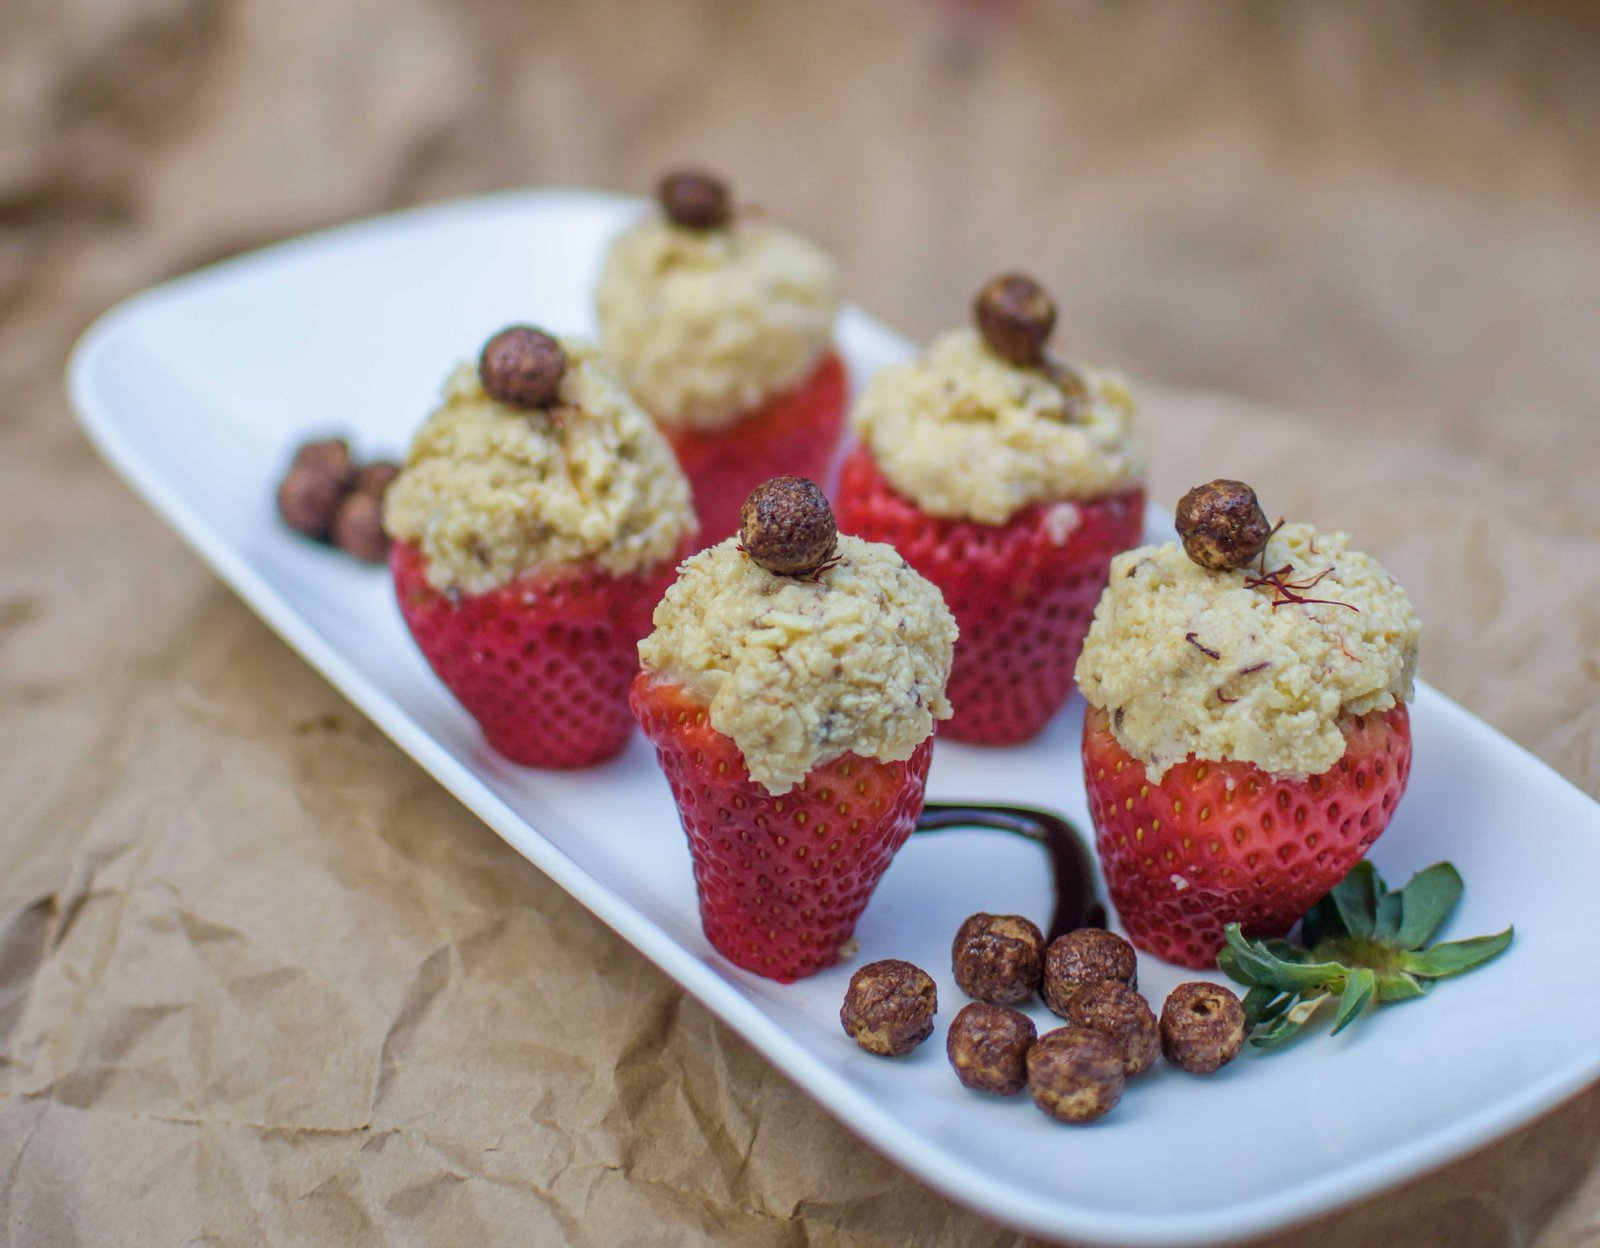 Stuffed Strawberries Recipe With Grated Paneer